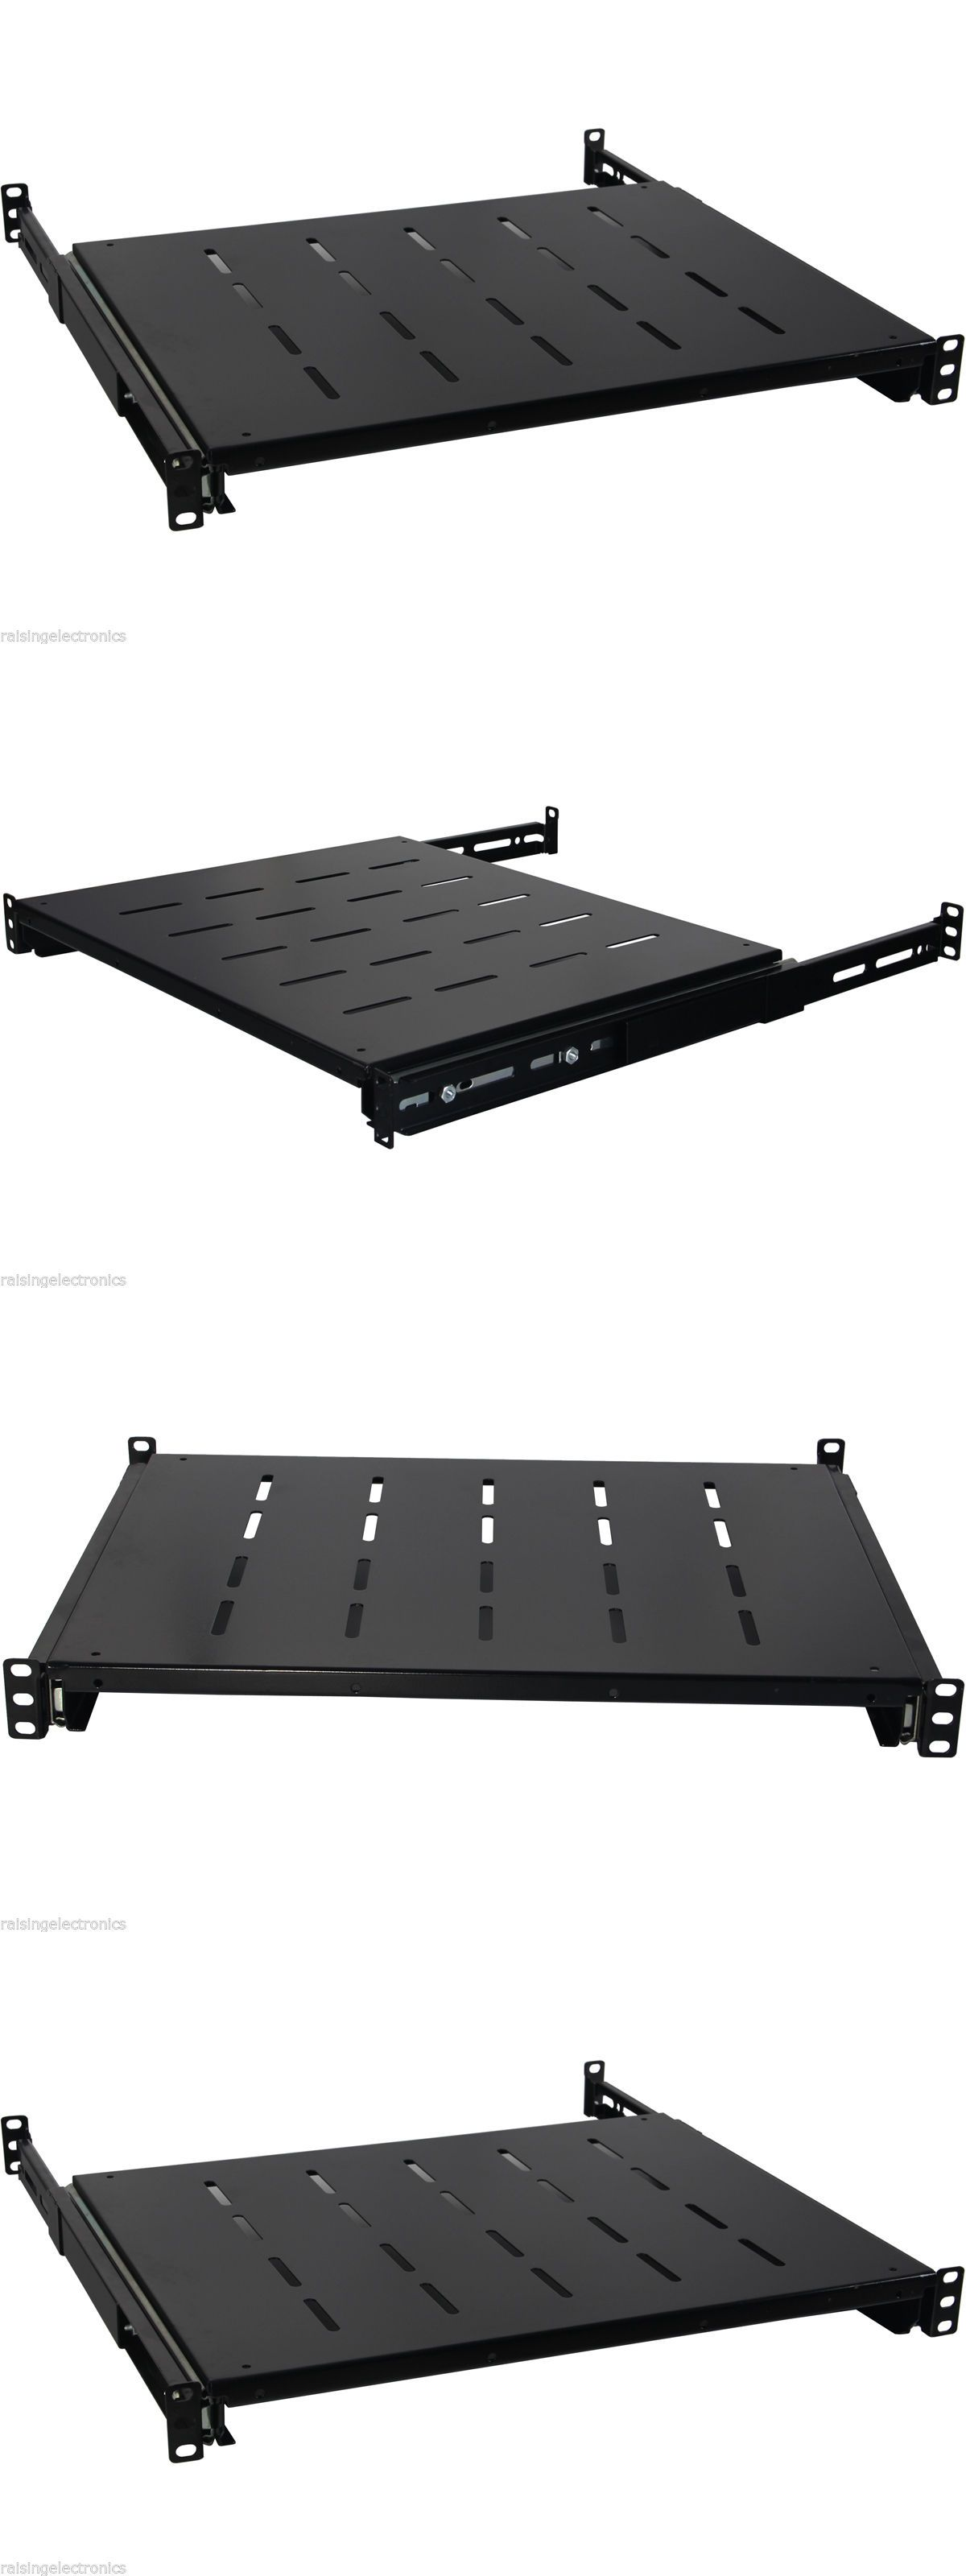 6u Wall Mount Open Frame 19 Server Equipment Rack Threaded 16 Inch Depth Black Open Frame Wall Mount Rack Frame